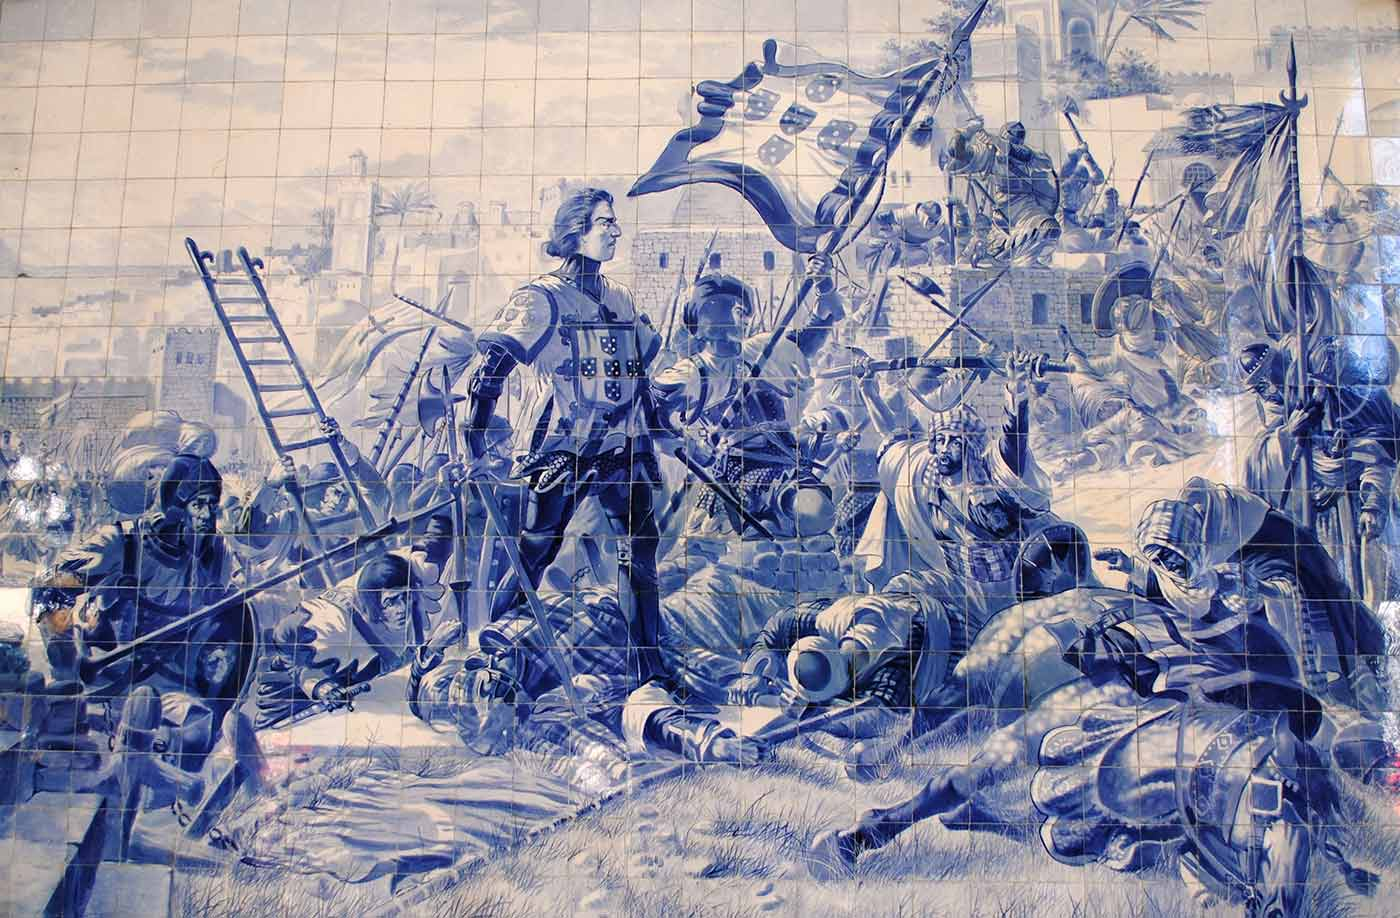 Panel of azulejos by Jorge Colaço (1864-1942) at the São Bento railway station, depicting Prince Henry the Navigator during the conquest of Ceuta.